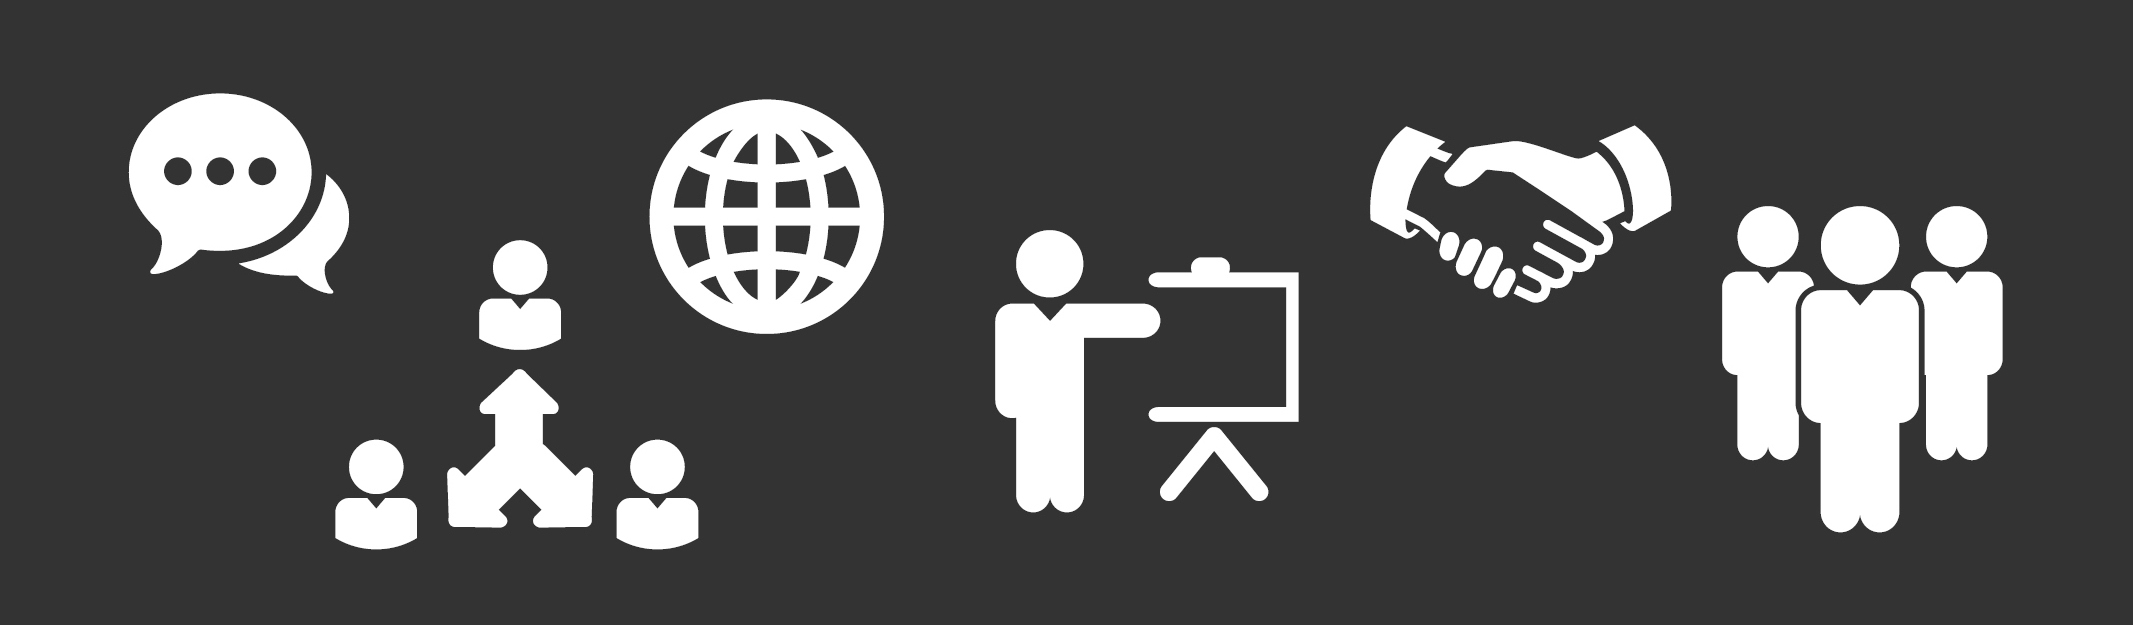 Products & Services icons